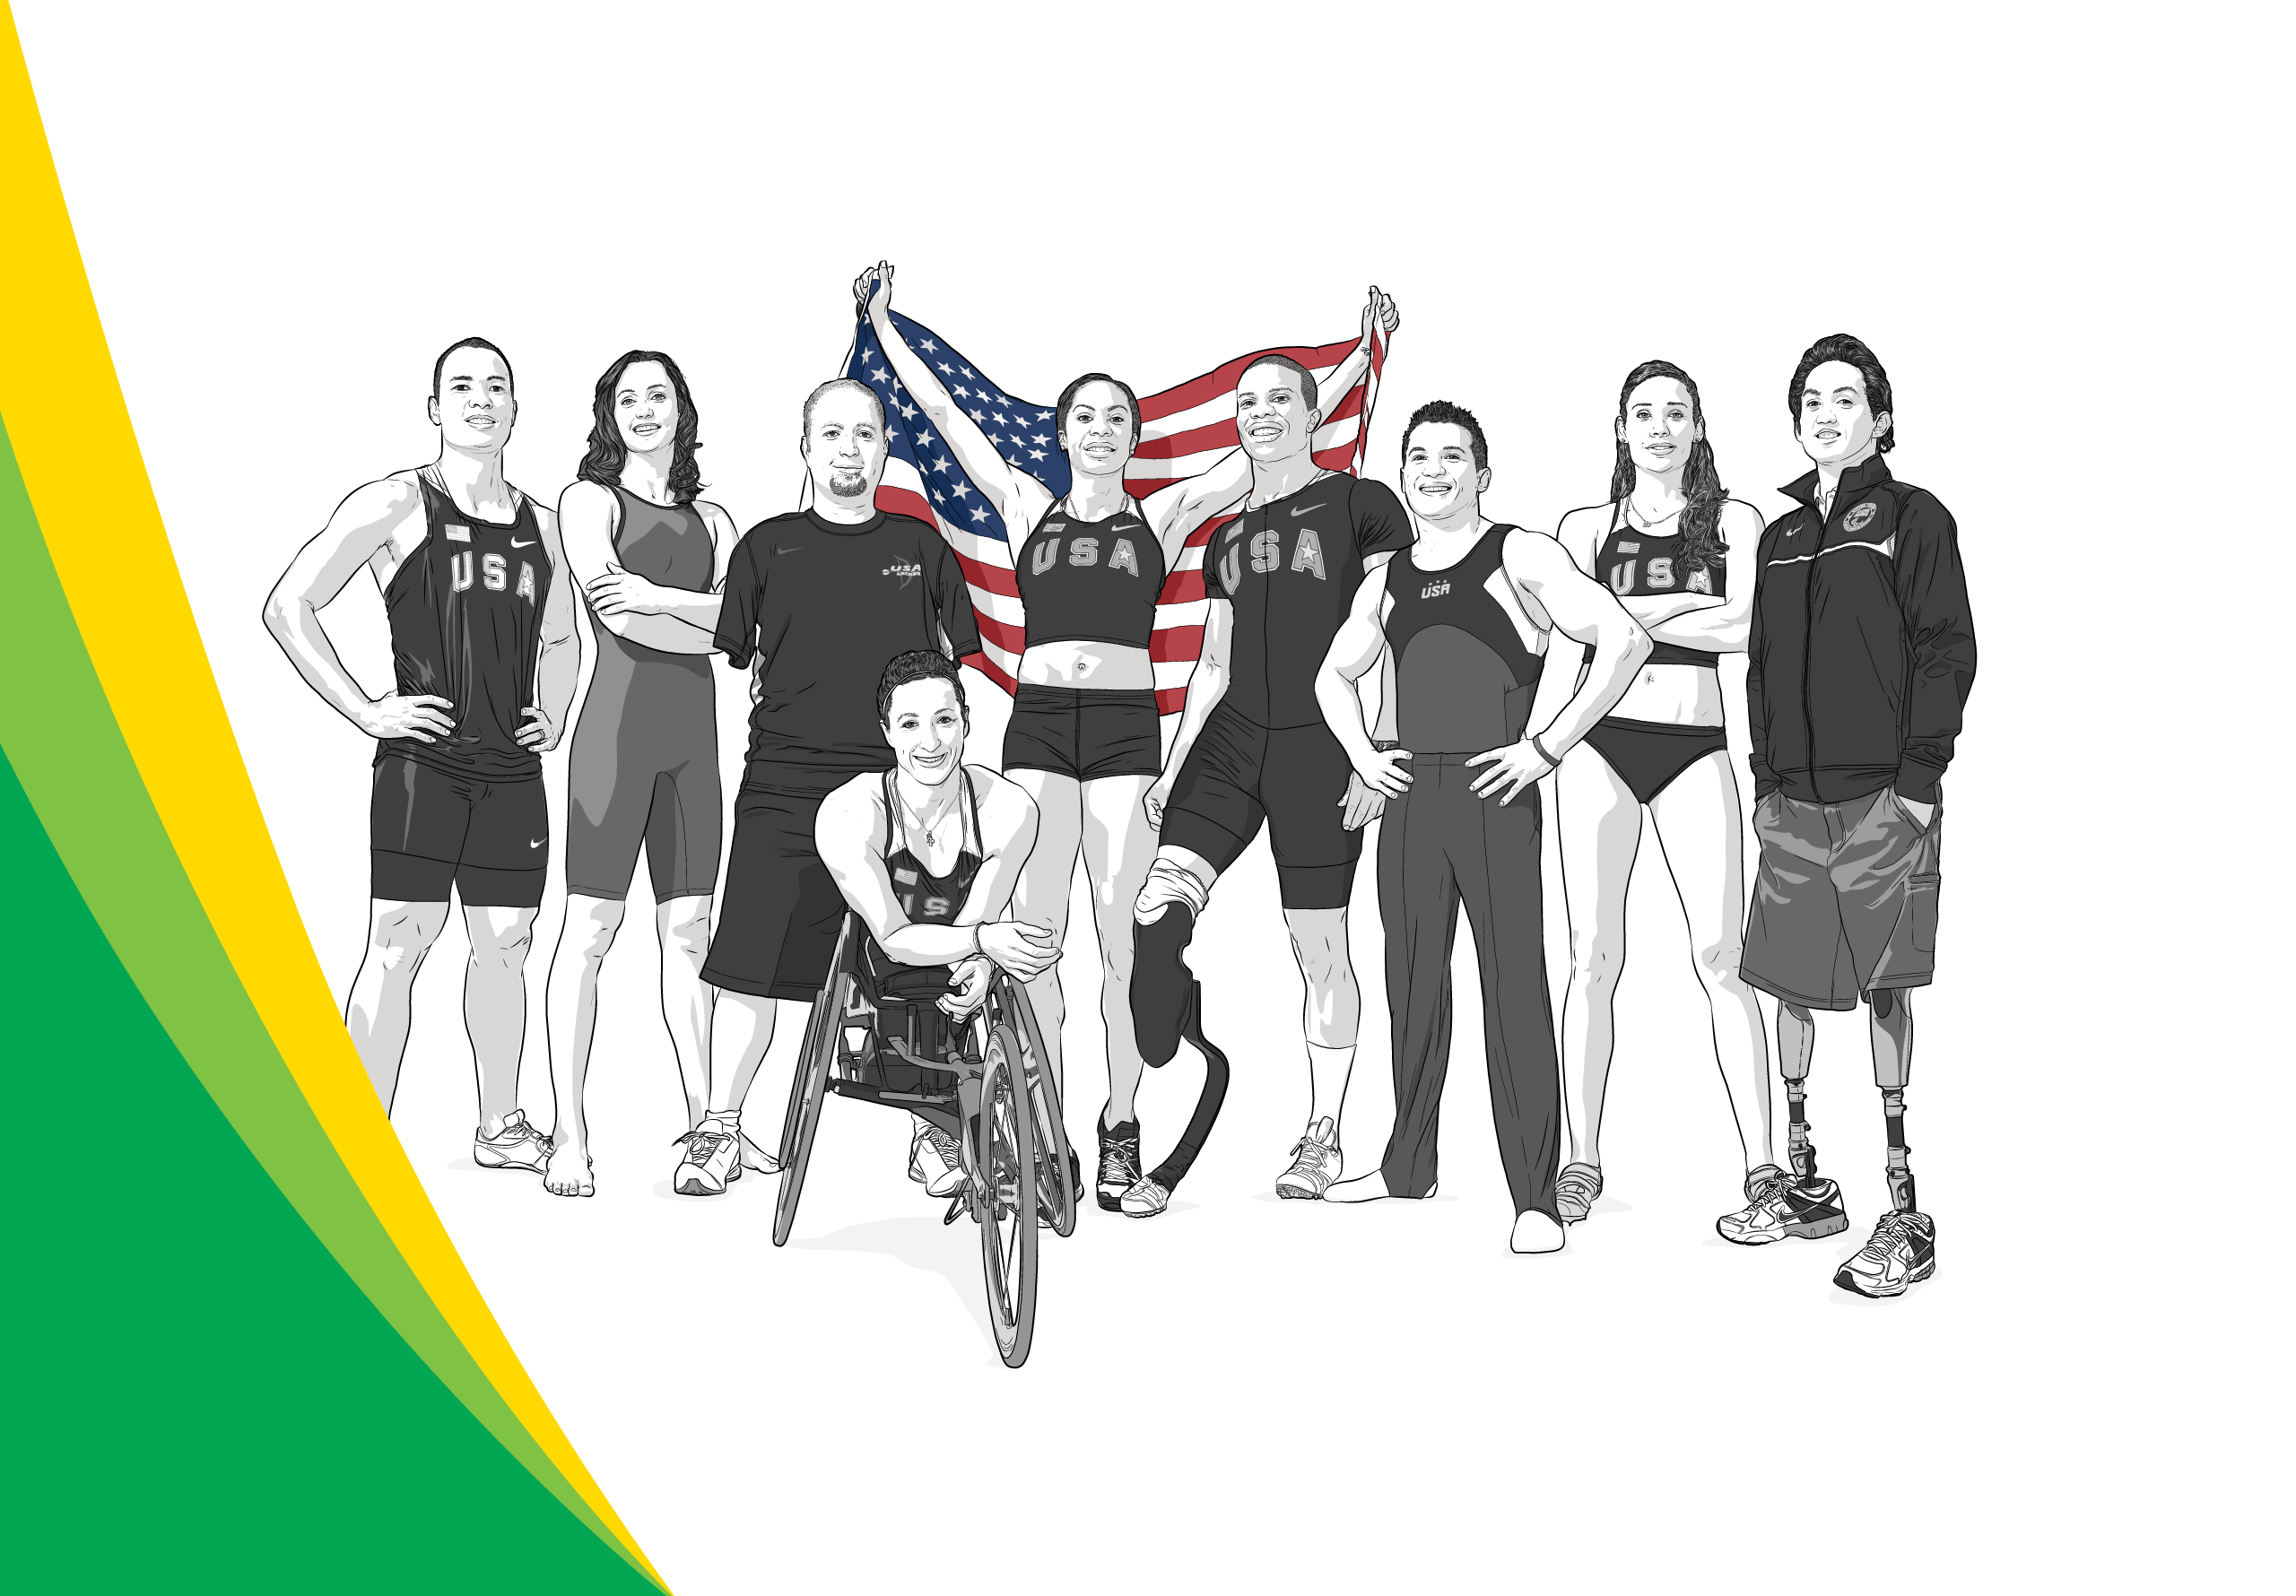 BP's Team USA Athletes pose, illustration by Max Hancock